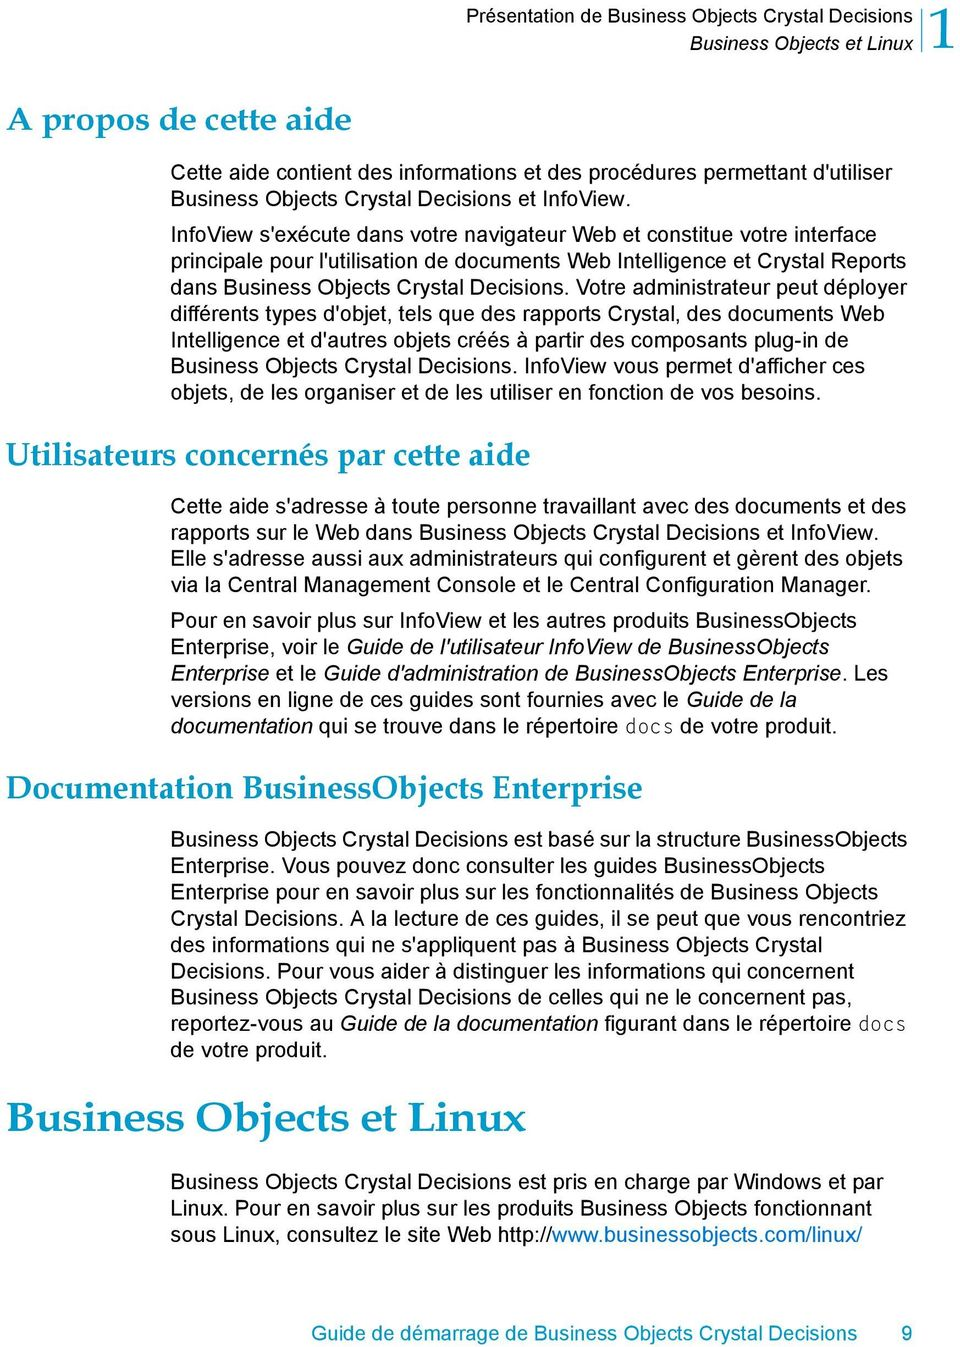 InfoView s'exécute dans votre navigateur Web et constitue votre interface principale pour l'utilisation de documents Web Intelligence et Crystal Reports dans Business Objects Crystal Decisions.